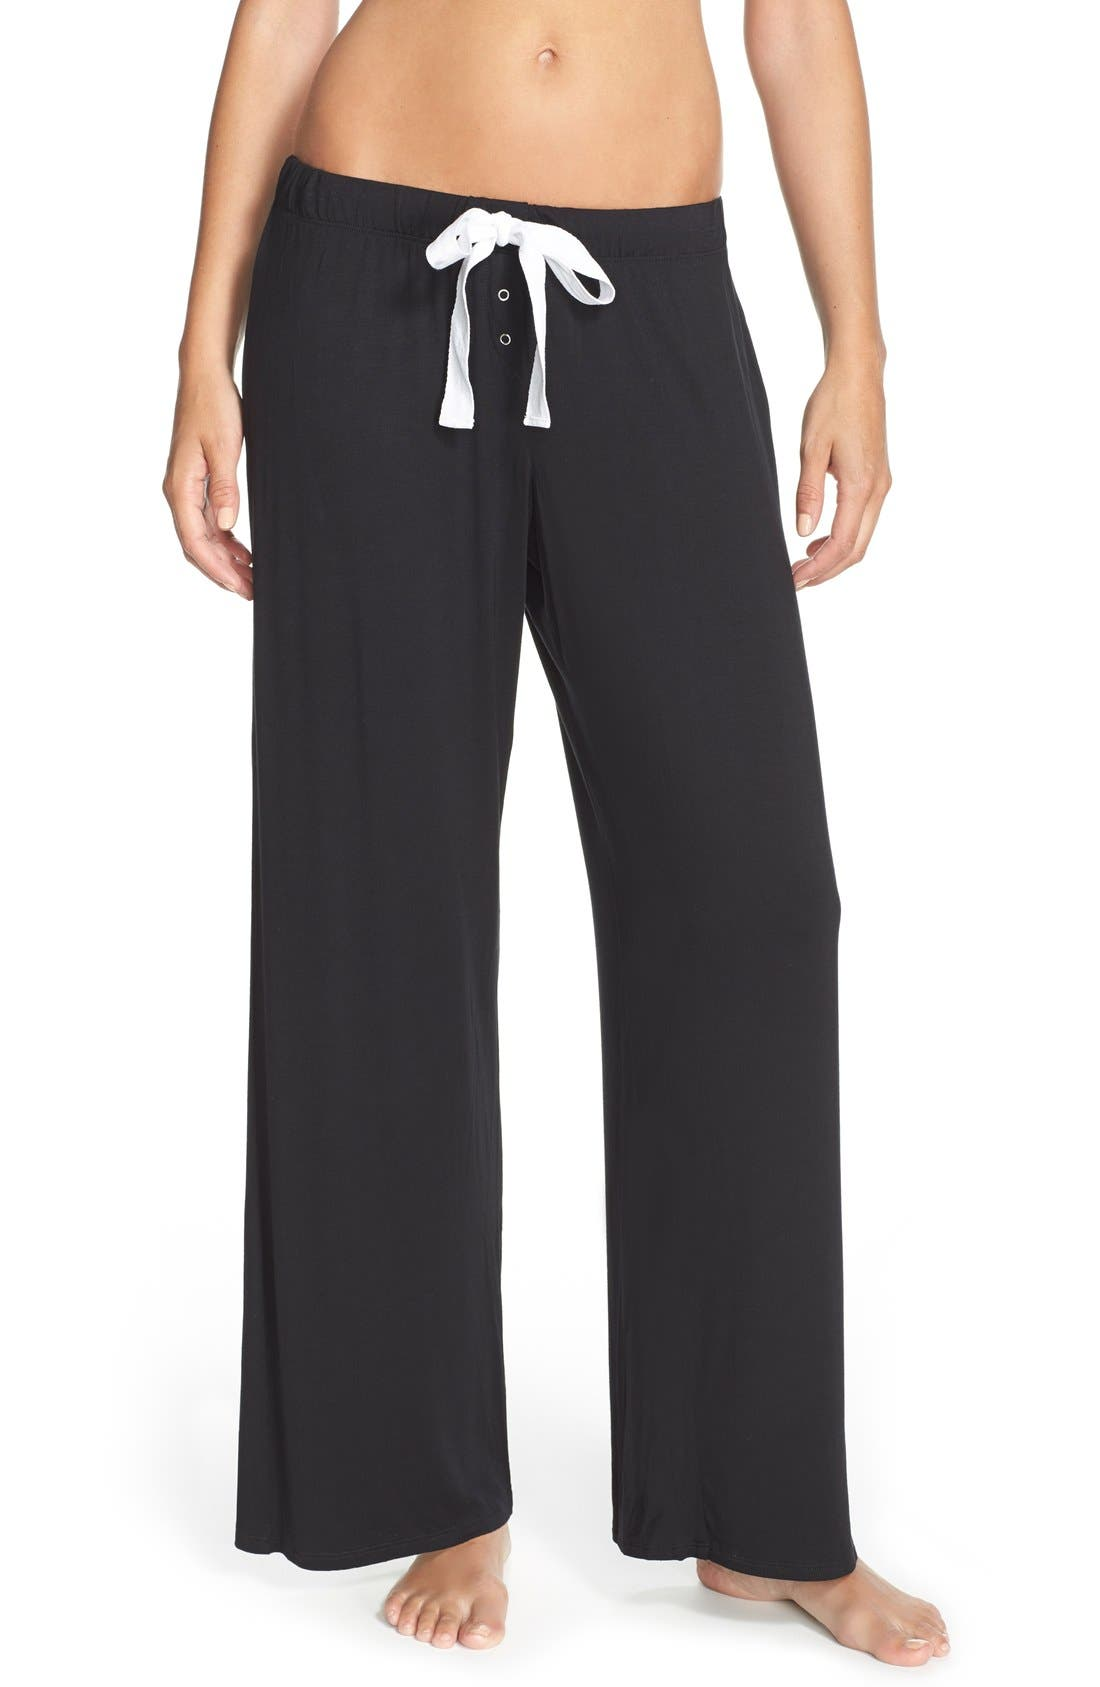 Alternate Image 1 Selected - Fleur't With Me Stretch Lounge Pants